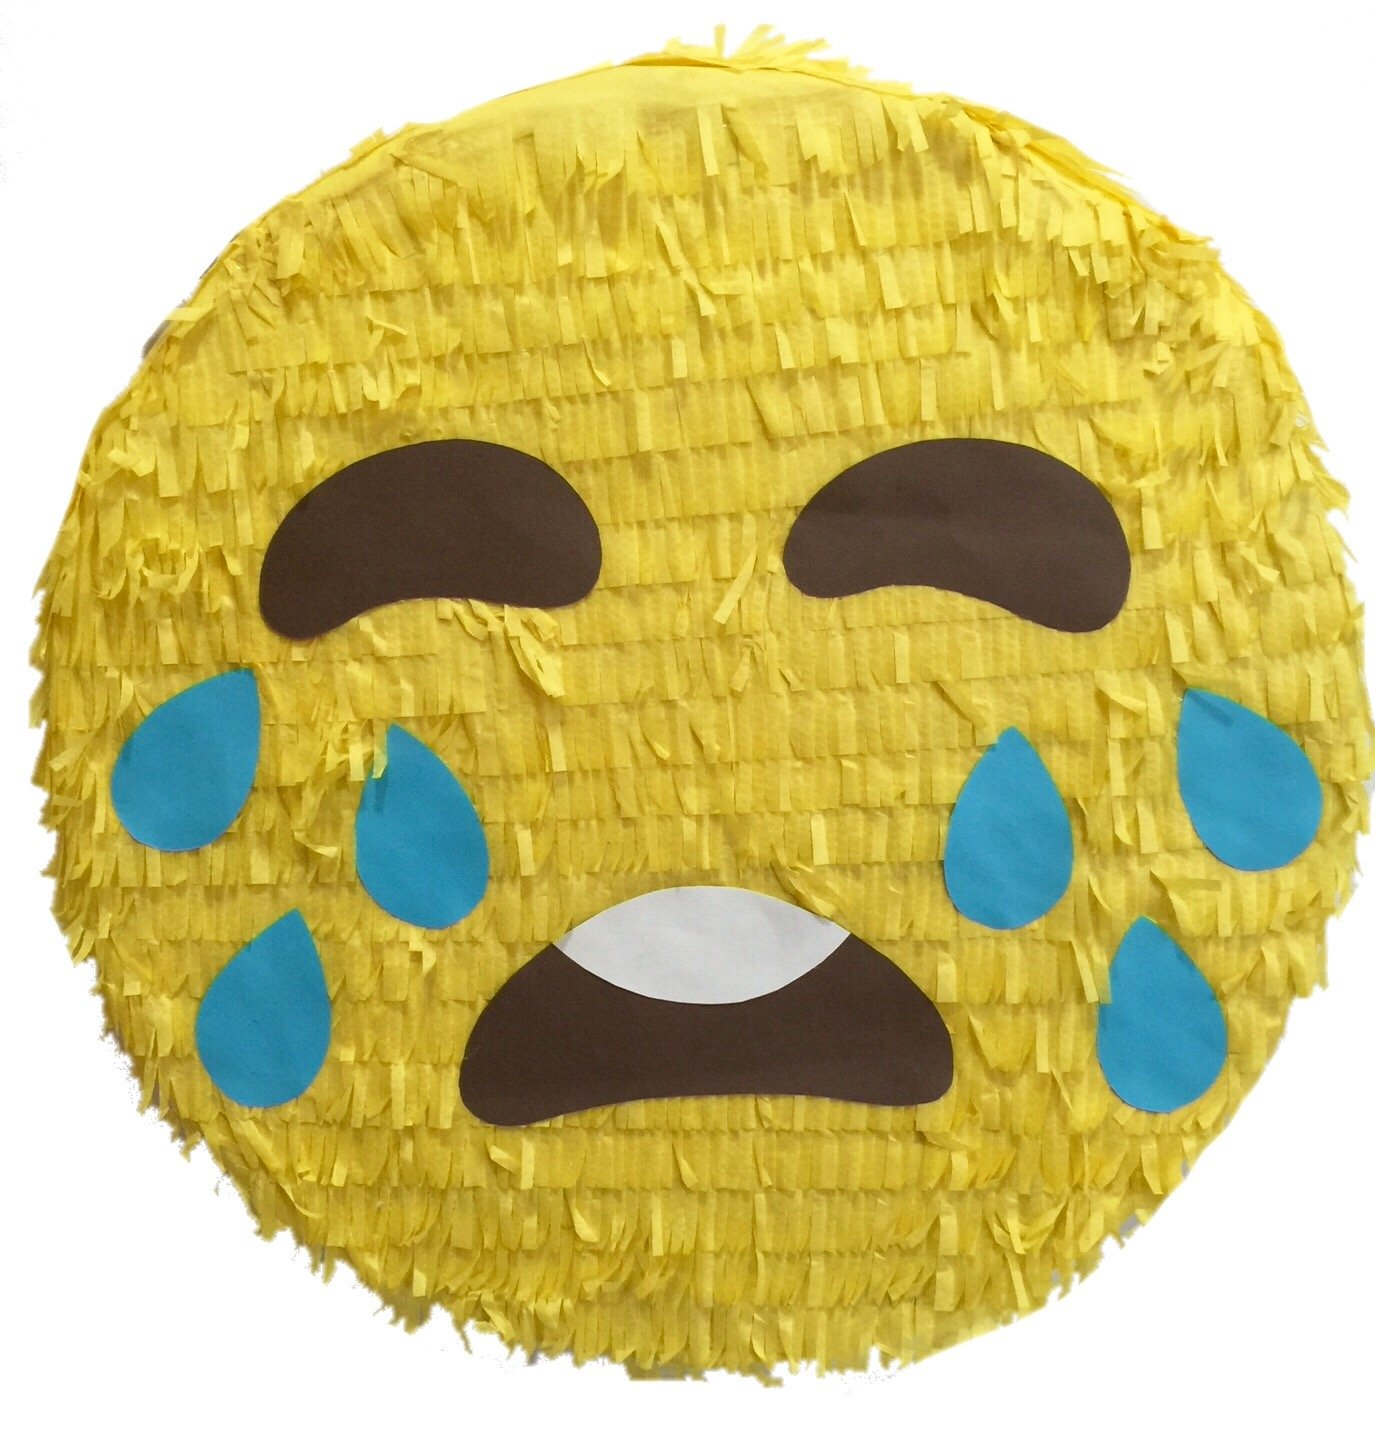 Emotional Emoji Pinata Crying